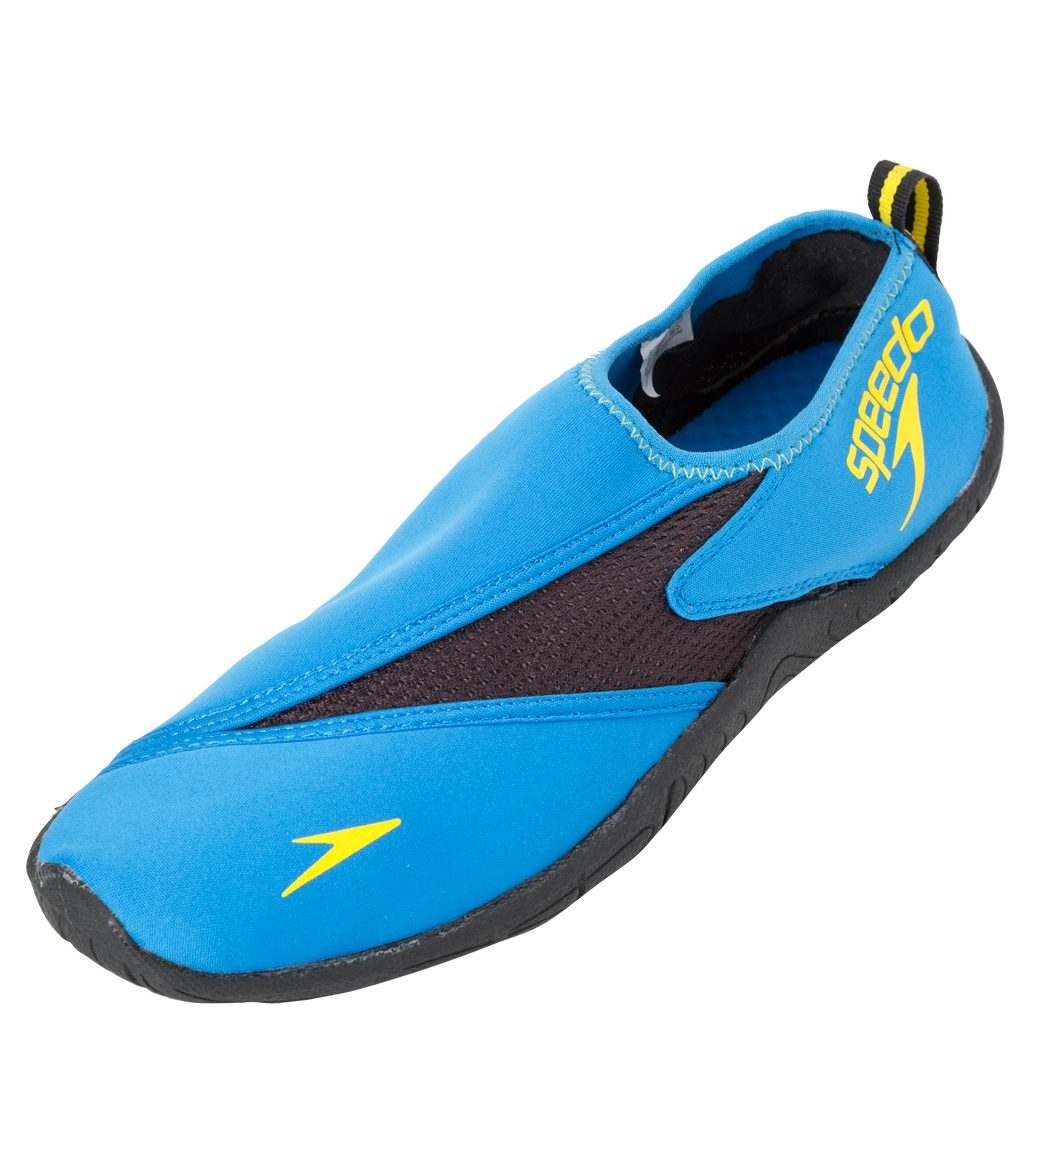 b44ea325556f Speedo Men s Surfwalker Pro 3.0 Water Shoes at SwimOutlet.com